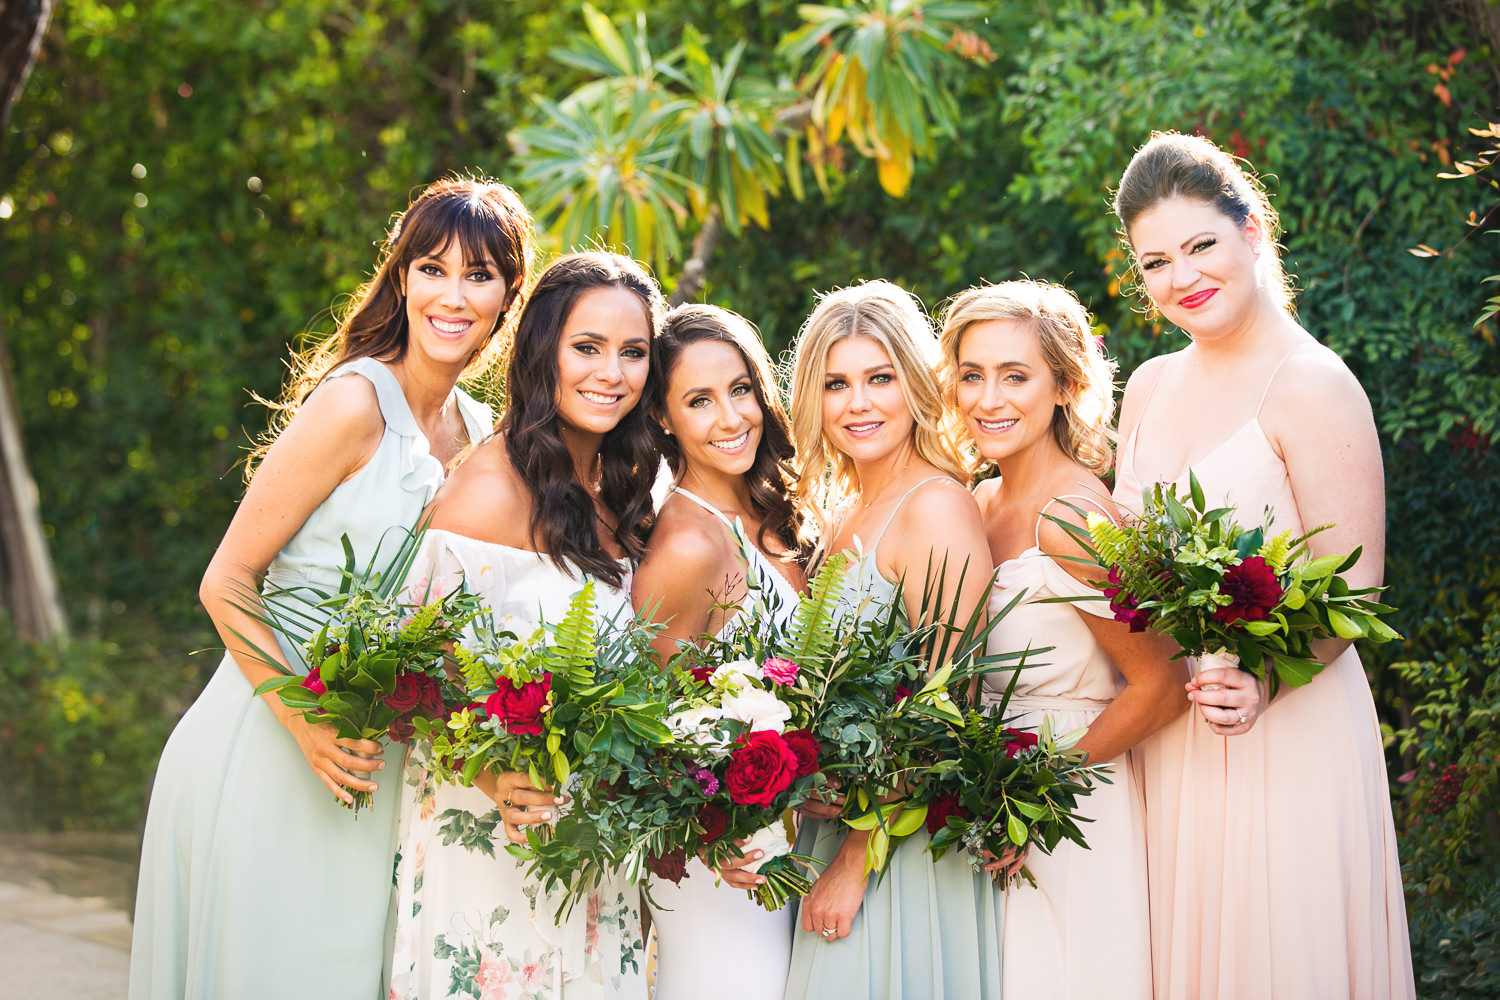 Bride With Bridesmaids For Her Palm Springs Wedding